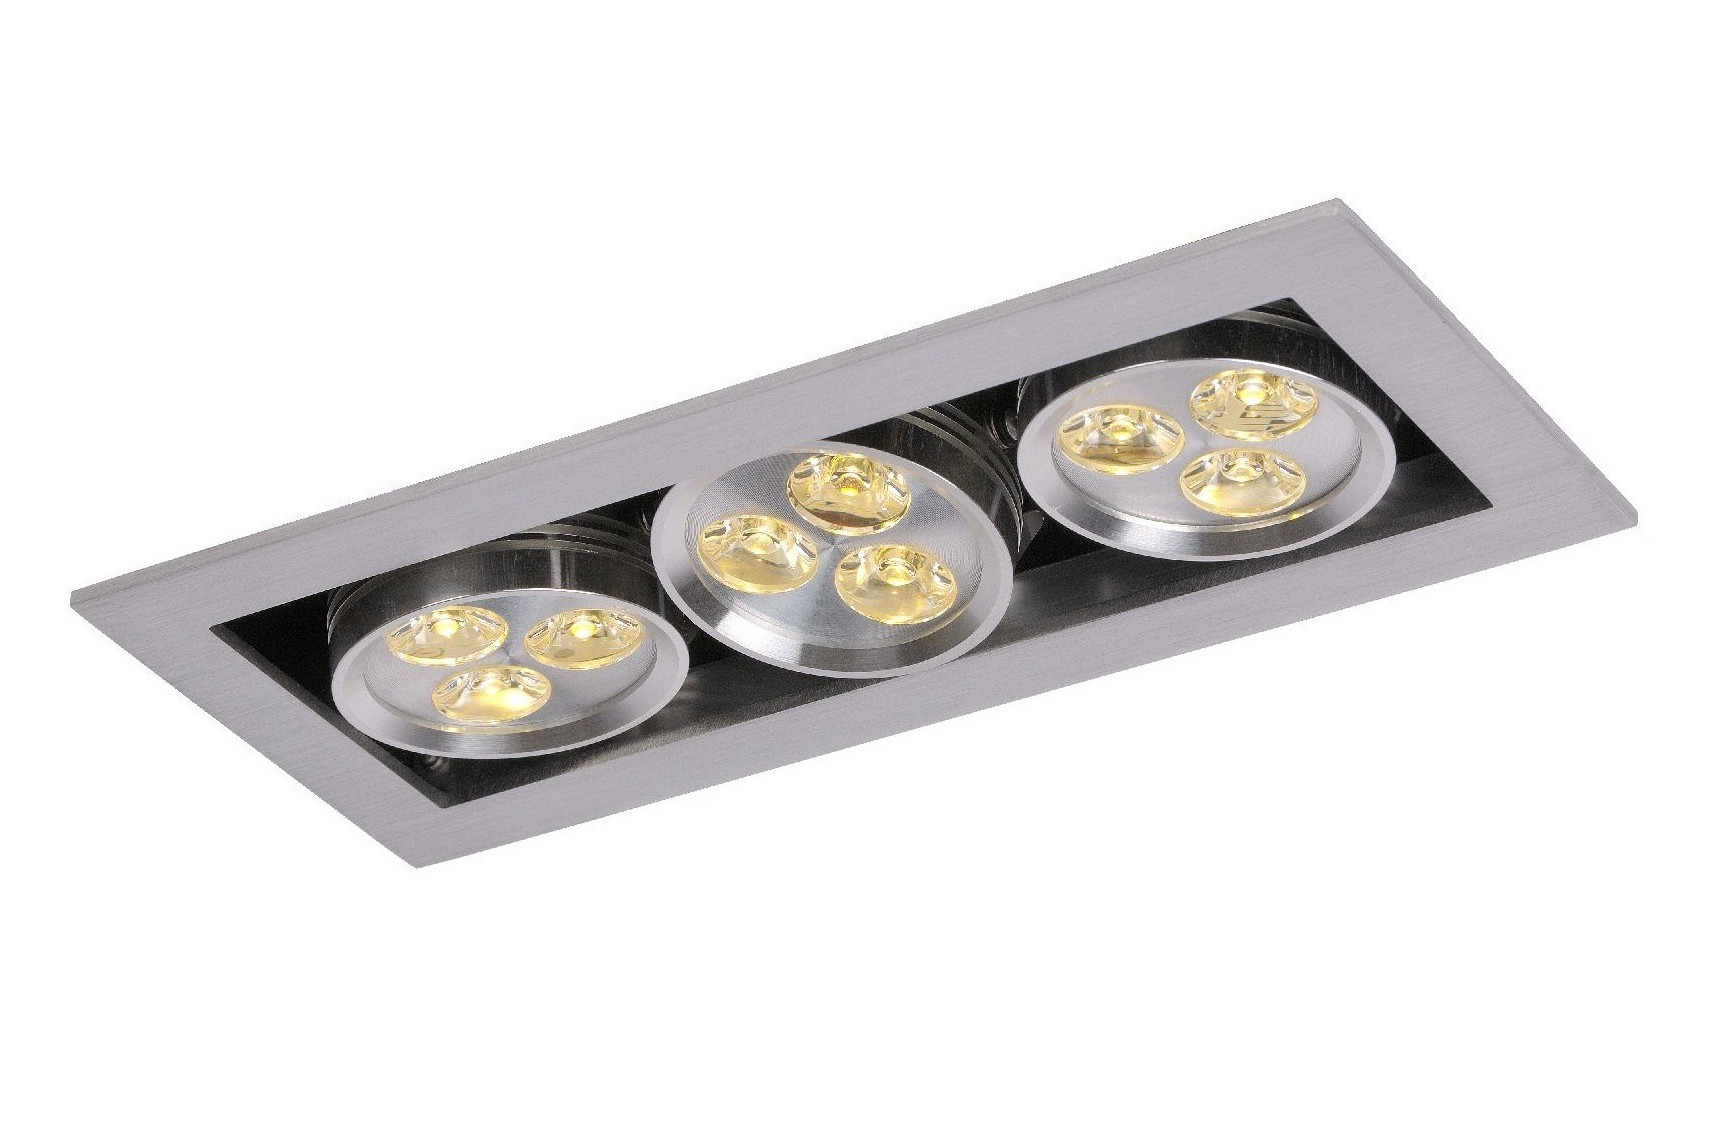 Spot led encastrable plafond cuisine awesome spot led for Spot encastrable meuble cuisine